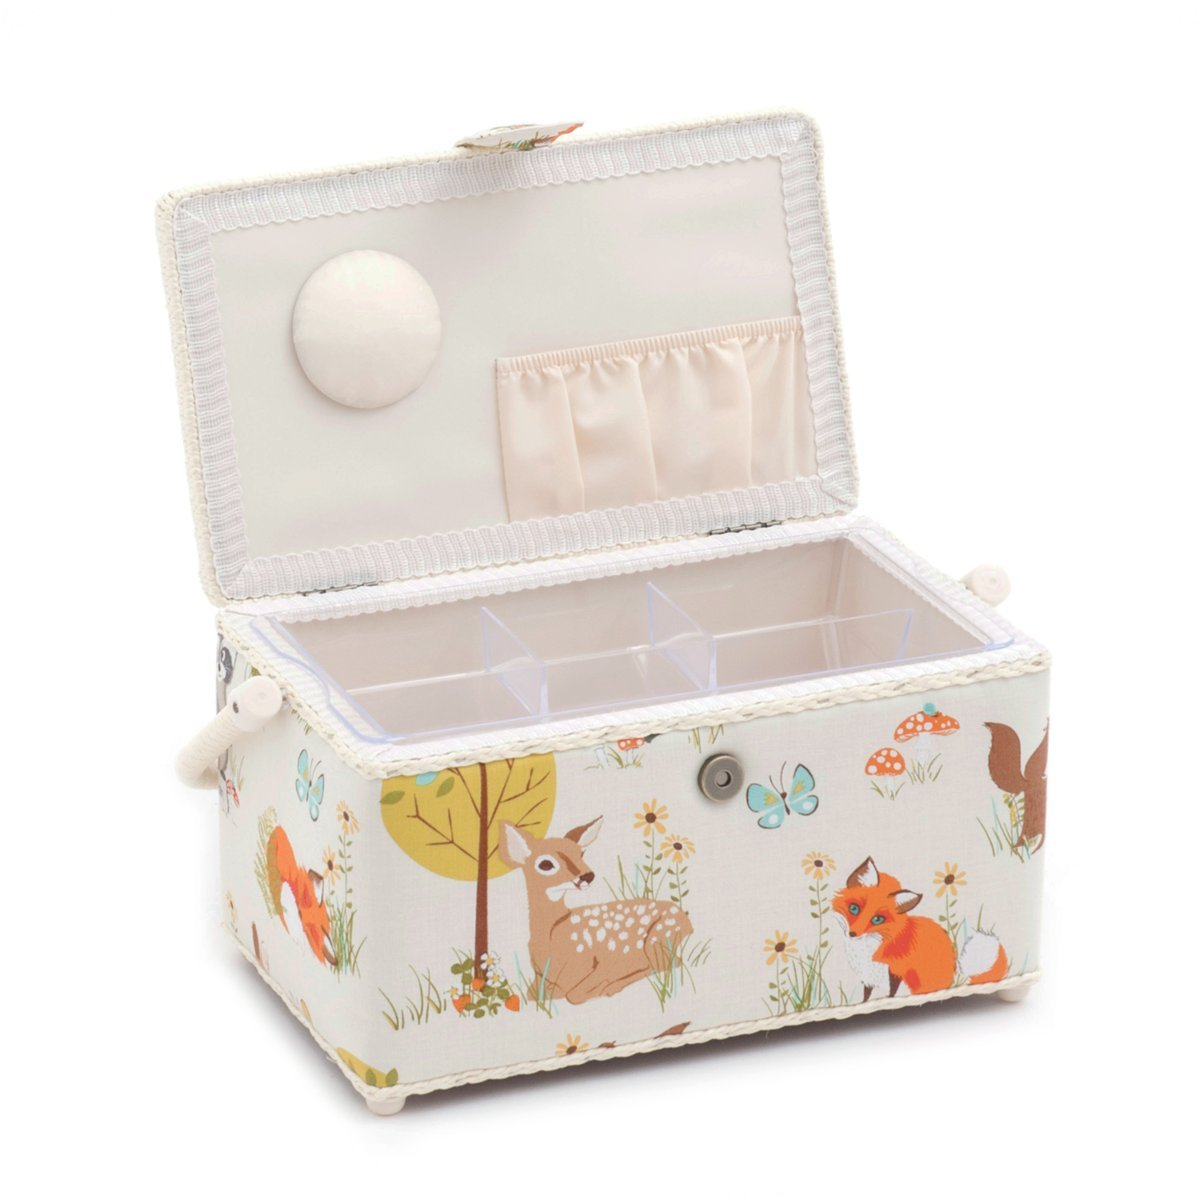 Hobby Gift Woodland Deep Rectangle Sewing Box 15 x 30 x 17cm d//w//h